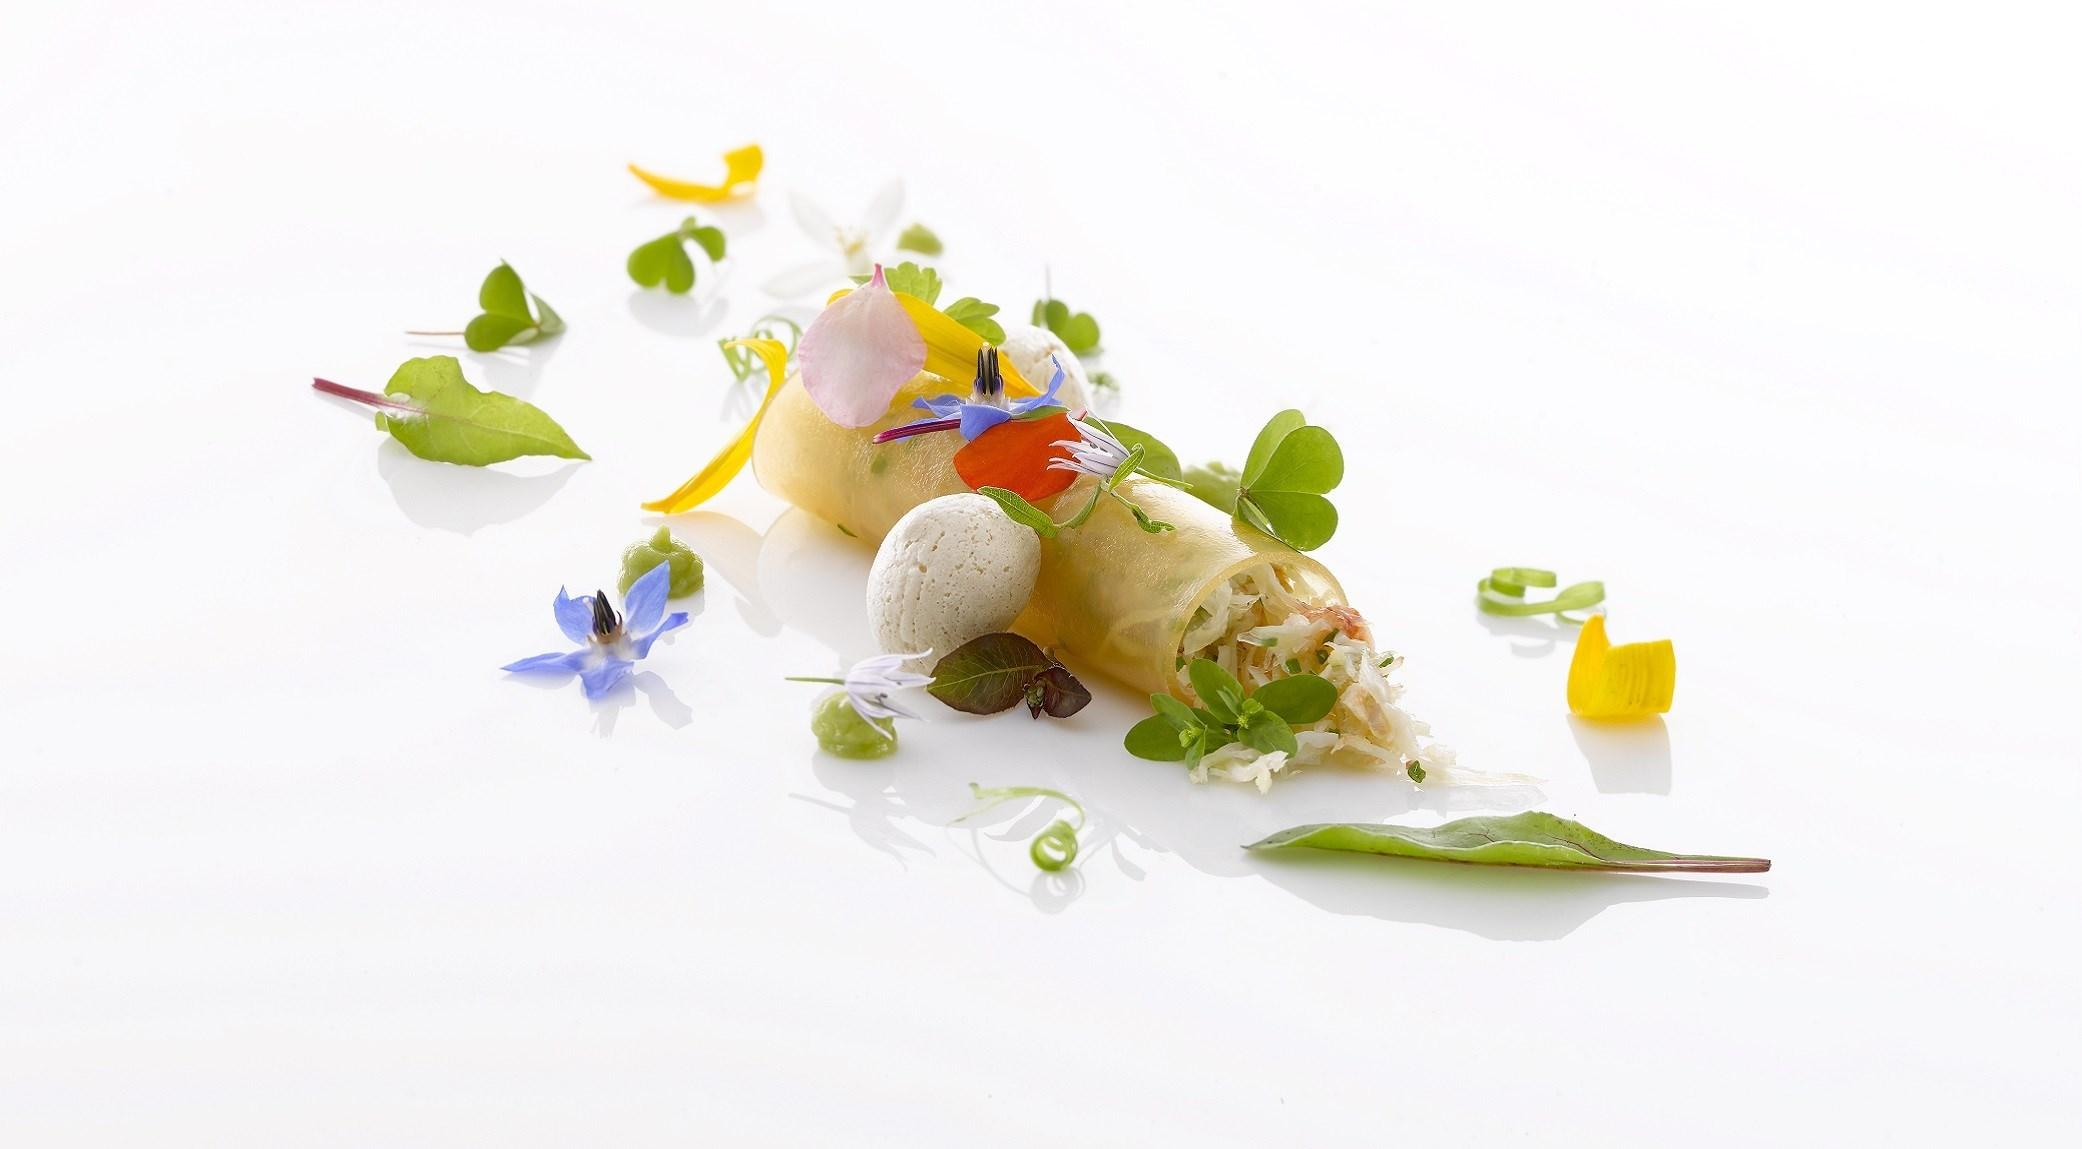 Cannelloni-crabe-pamplemousse-avocat-colagreco